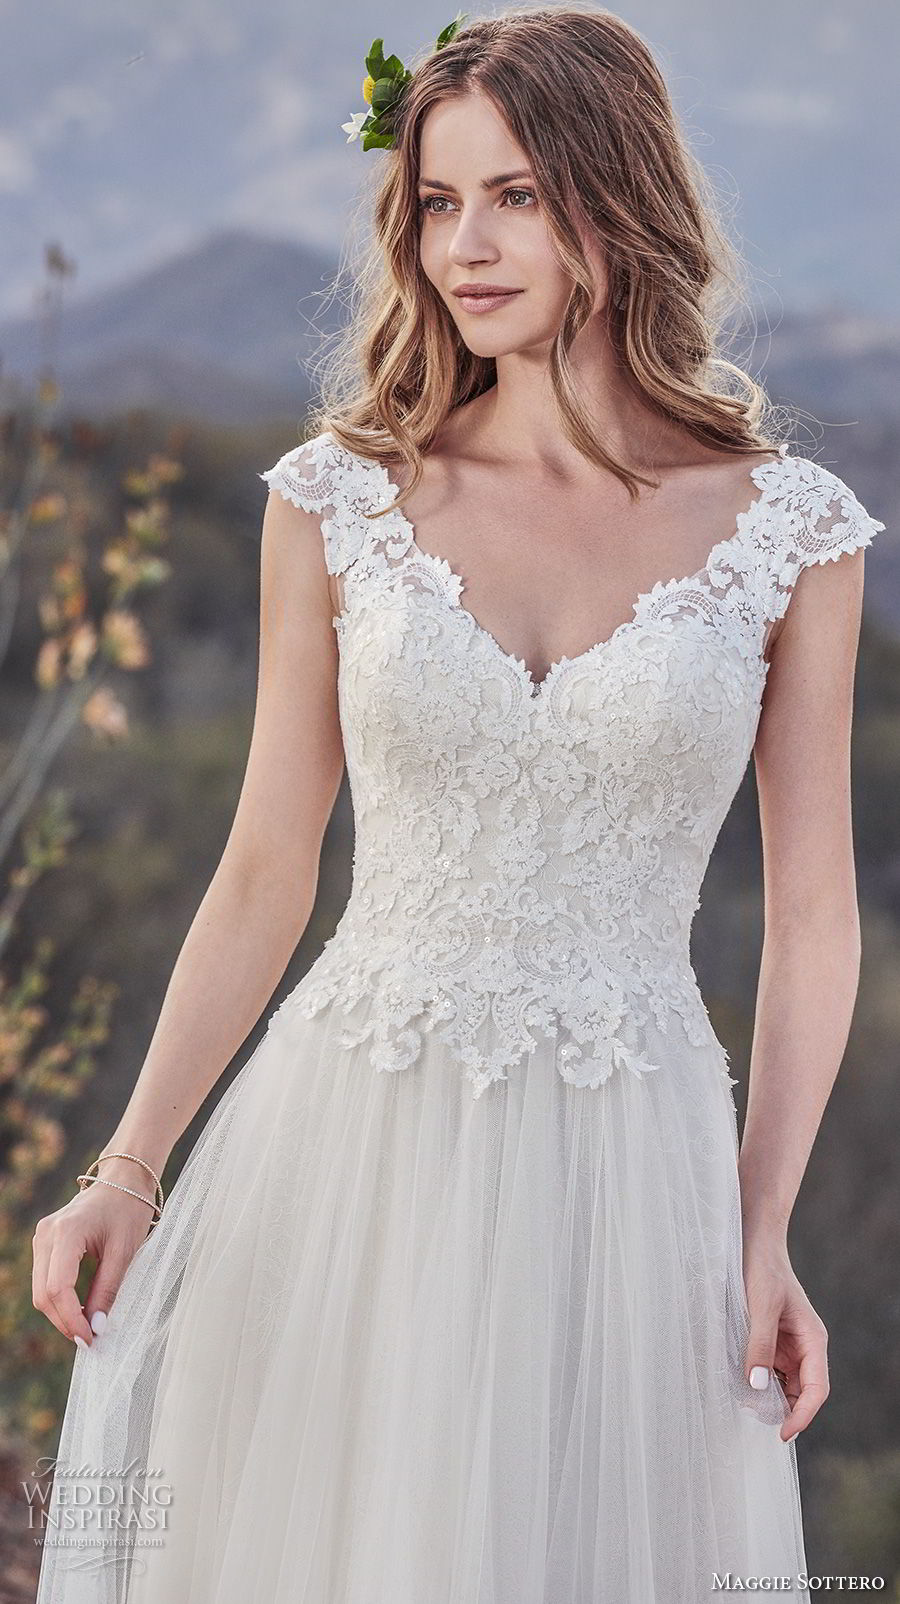 maggie sottero fall 2017 bridal cap sleeves v neck heavily embellished bodice romantic soft a  line wedding dress v back medium train (932) zv